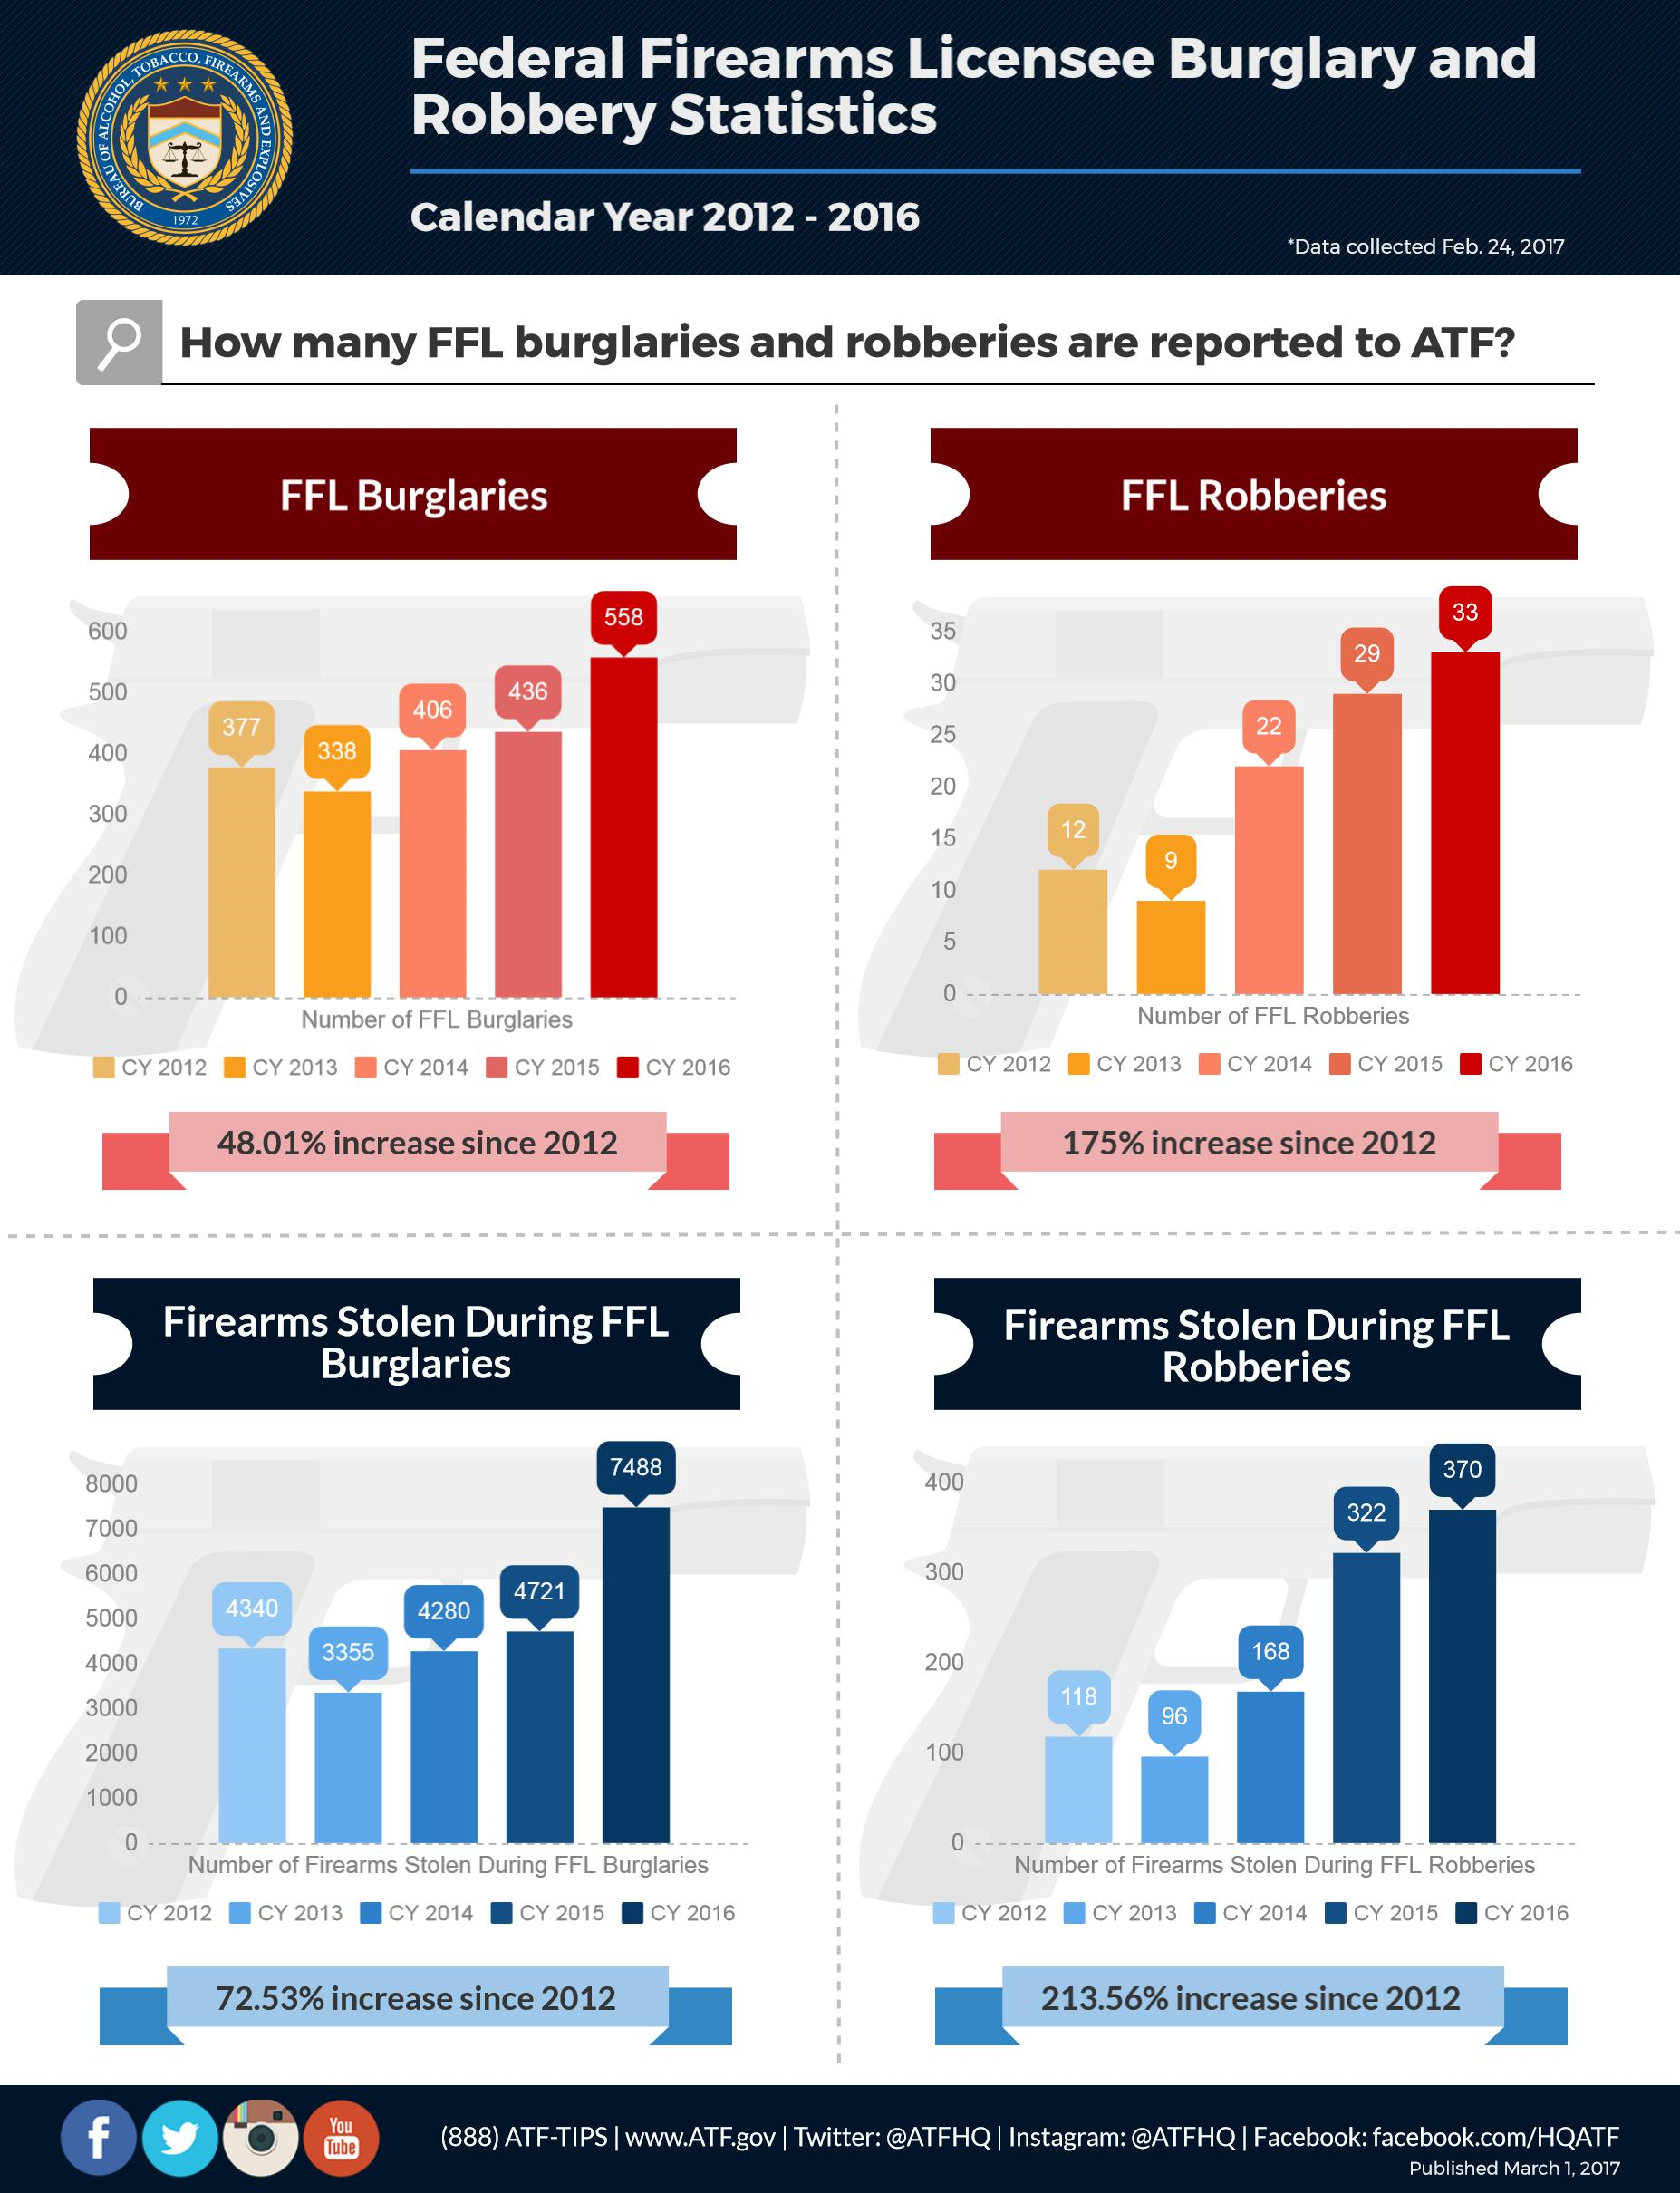 FFL Burglary and Robbery Statistics - Calendar years 2012 - 2016